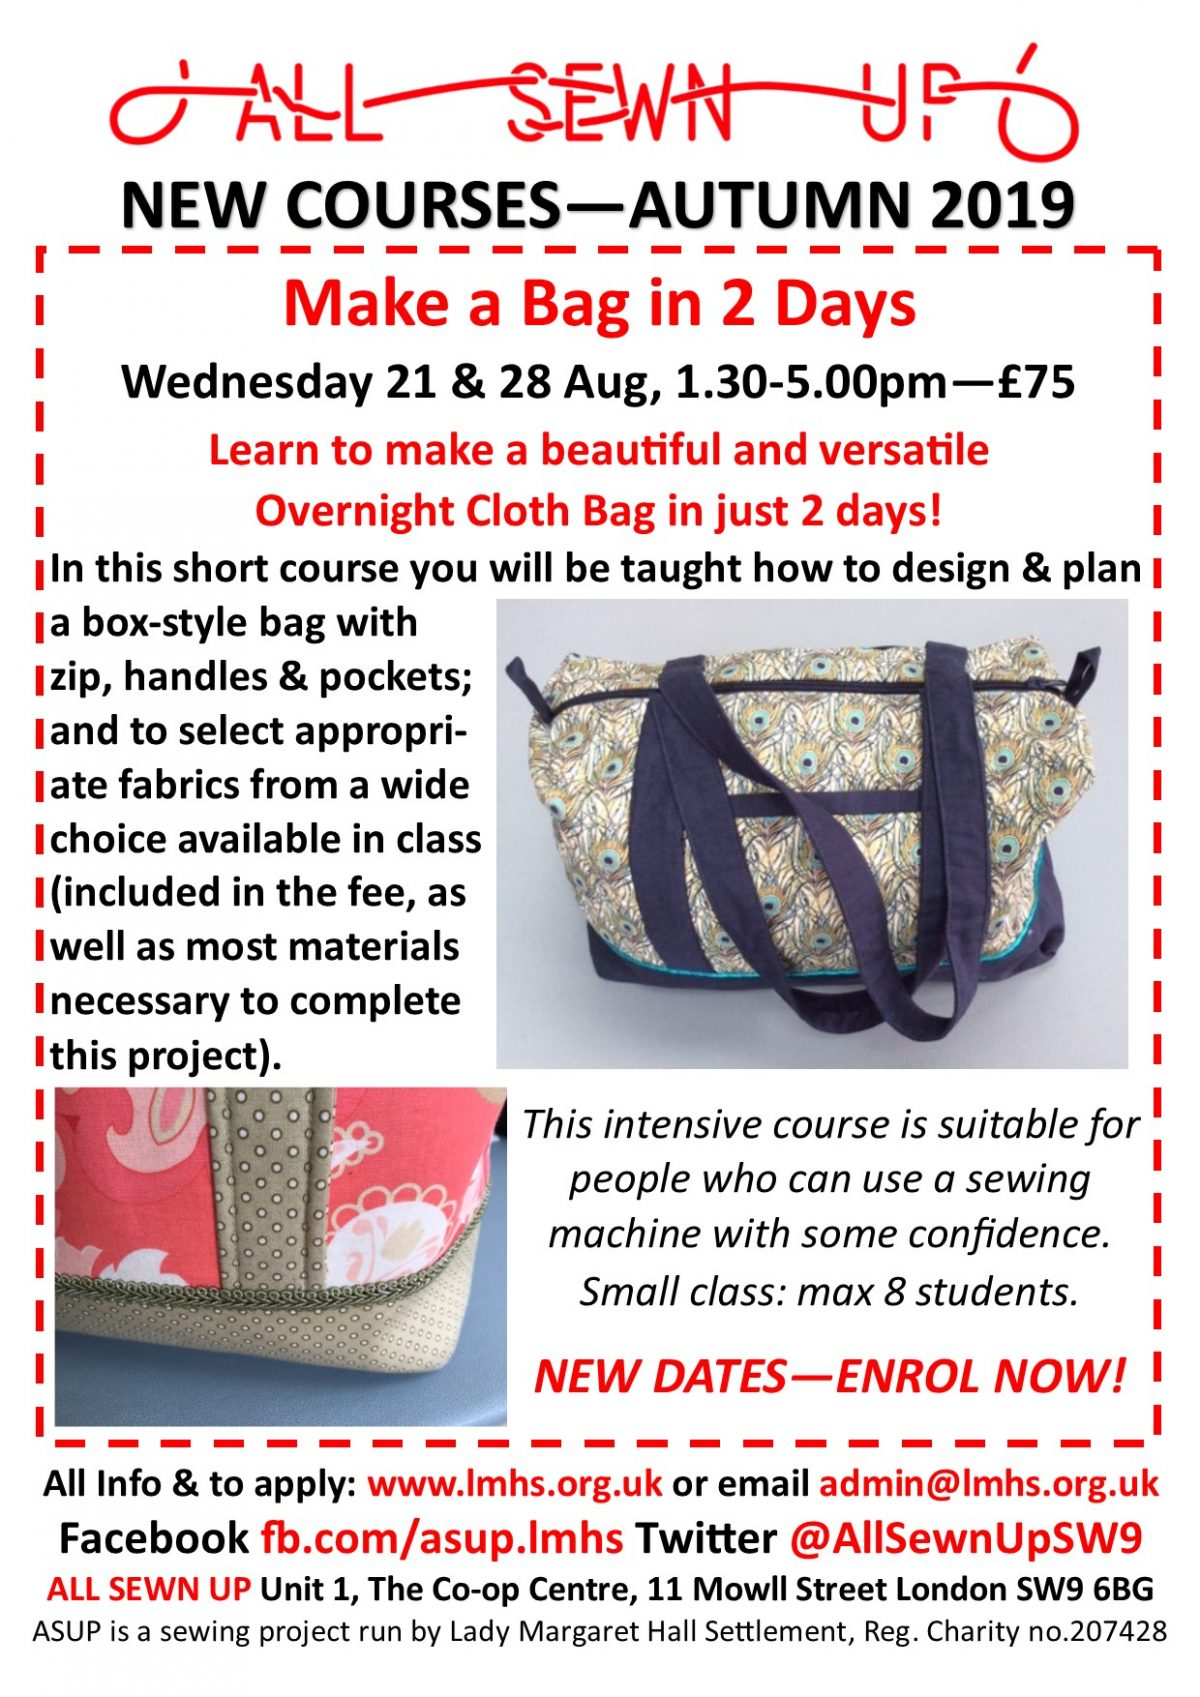 New dates for Make a Bag sewing course in August!